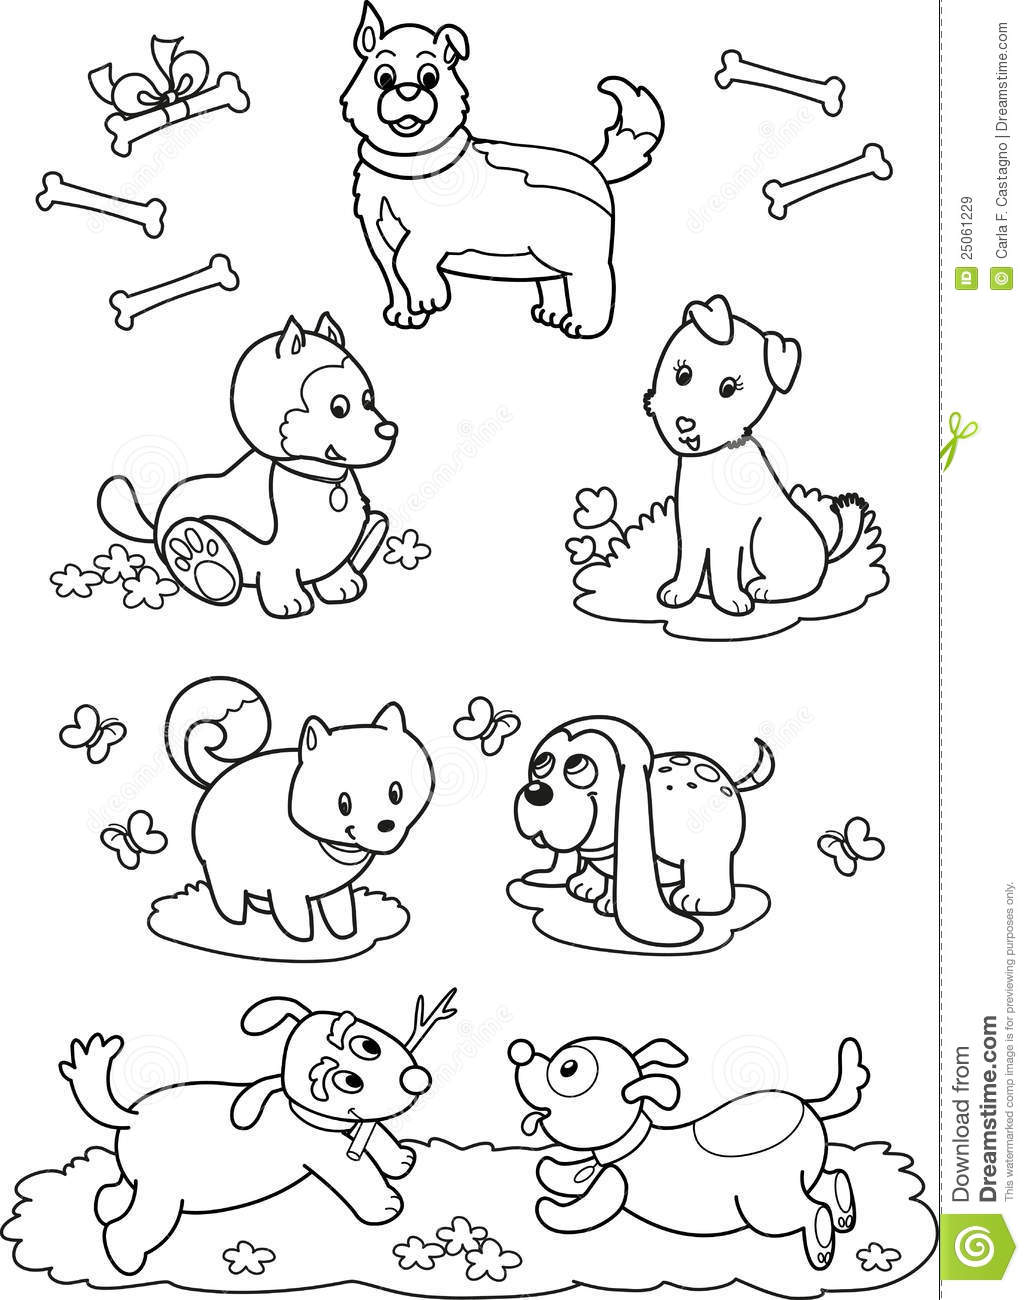 Cute Cartoon Dogs: Coloring Page Stock Vector - Illustration of ...